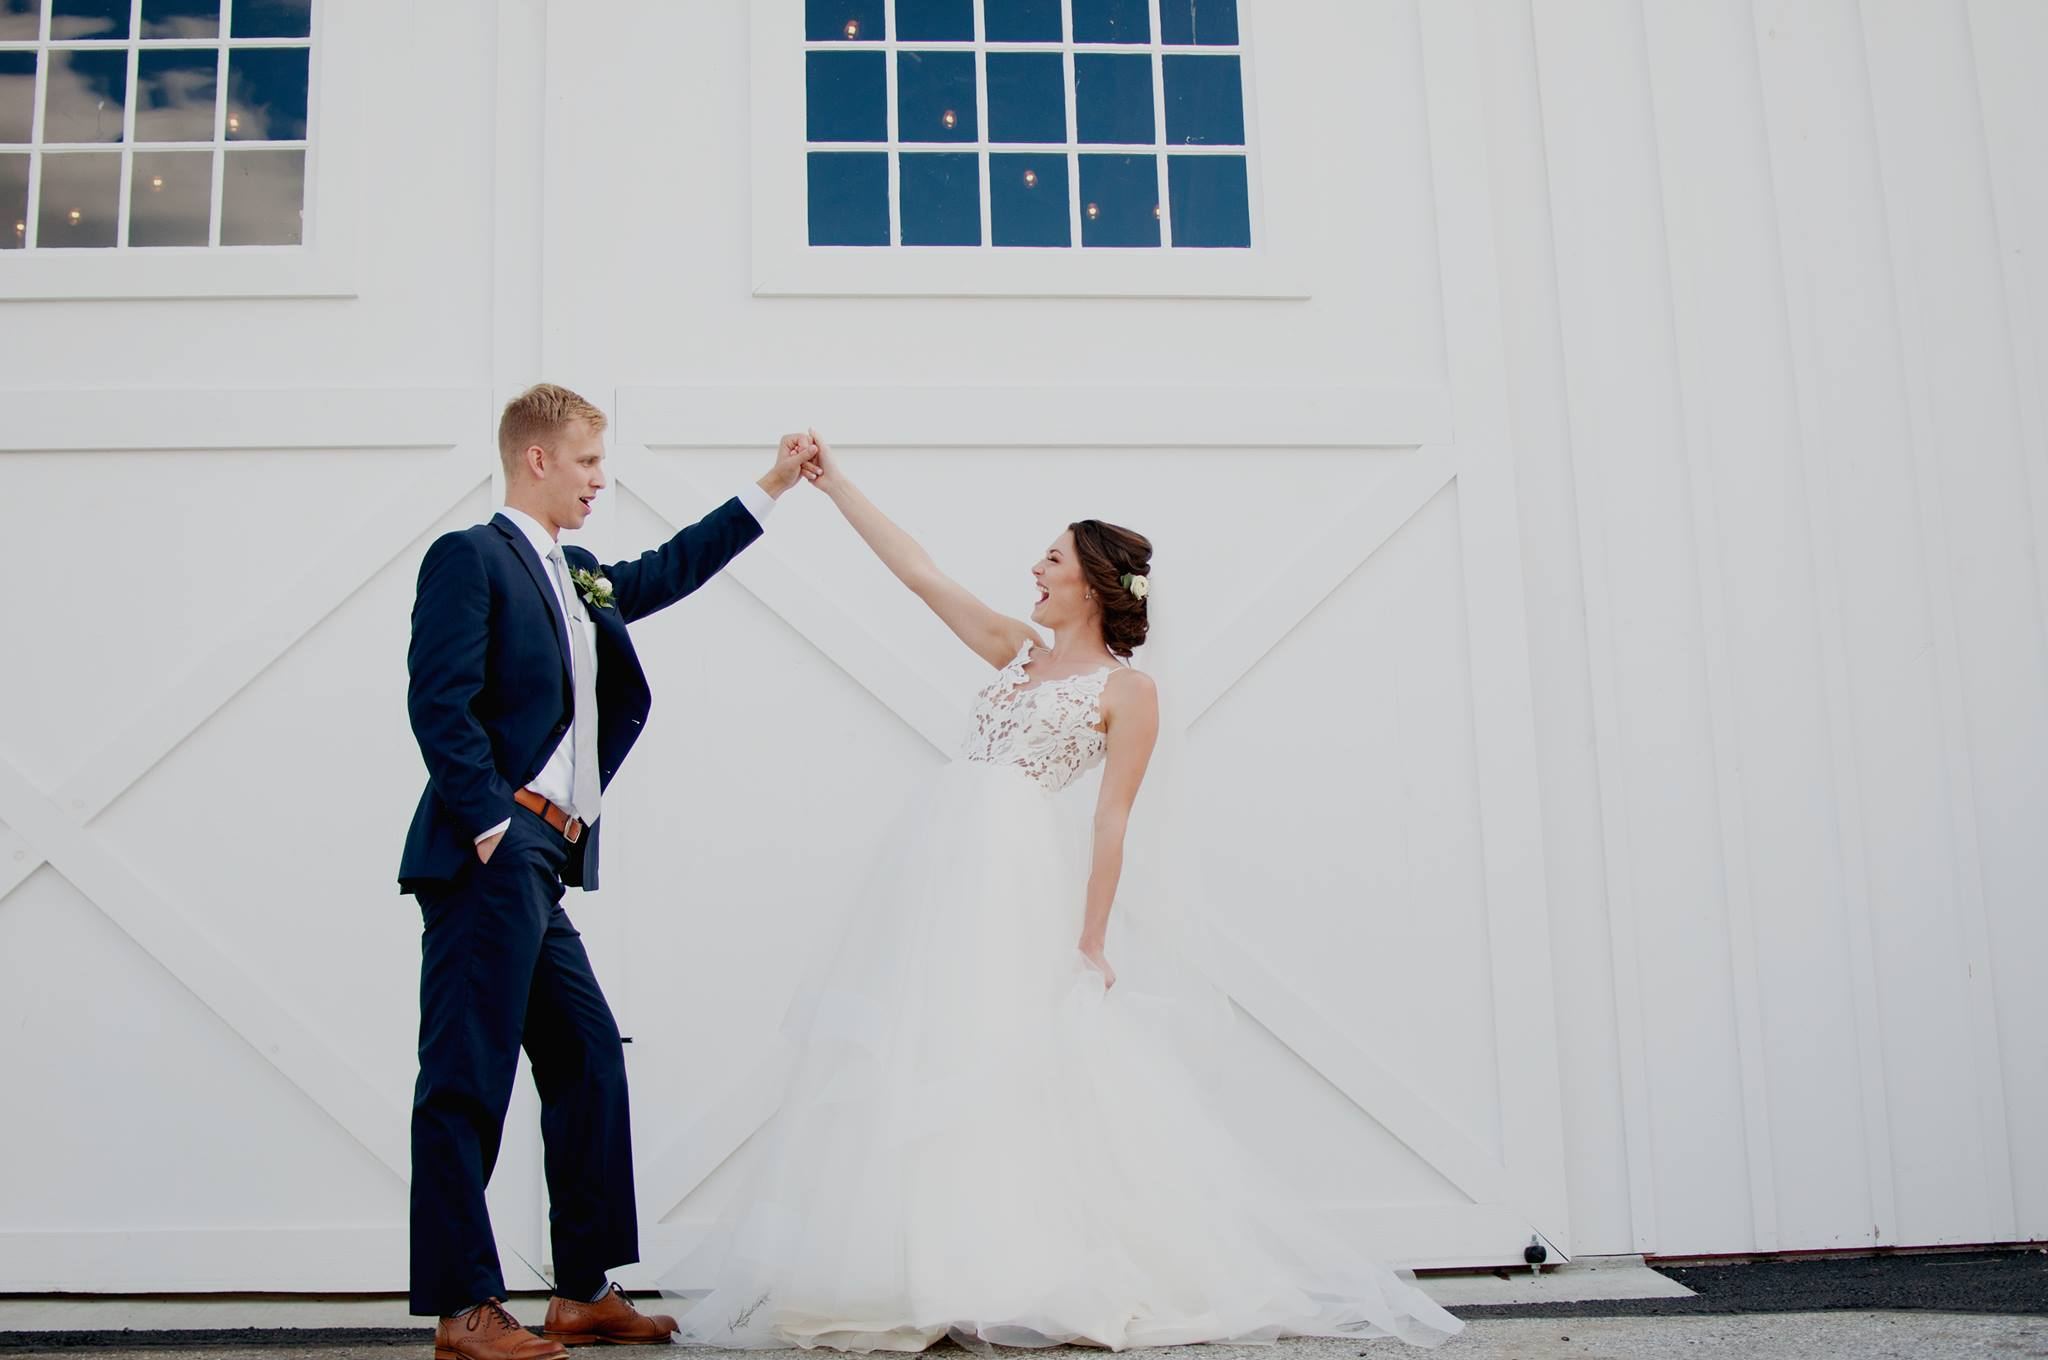 eric and missy dancing with barn door color.jpg